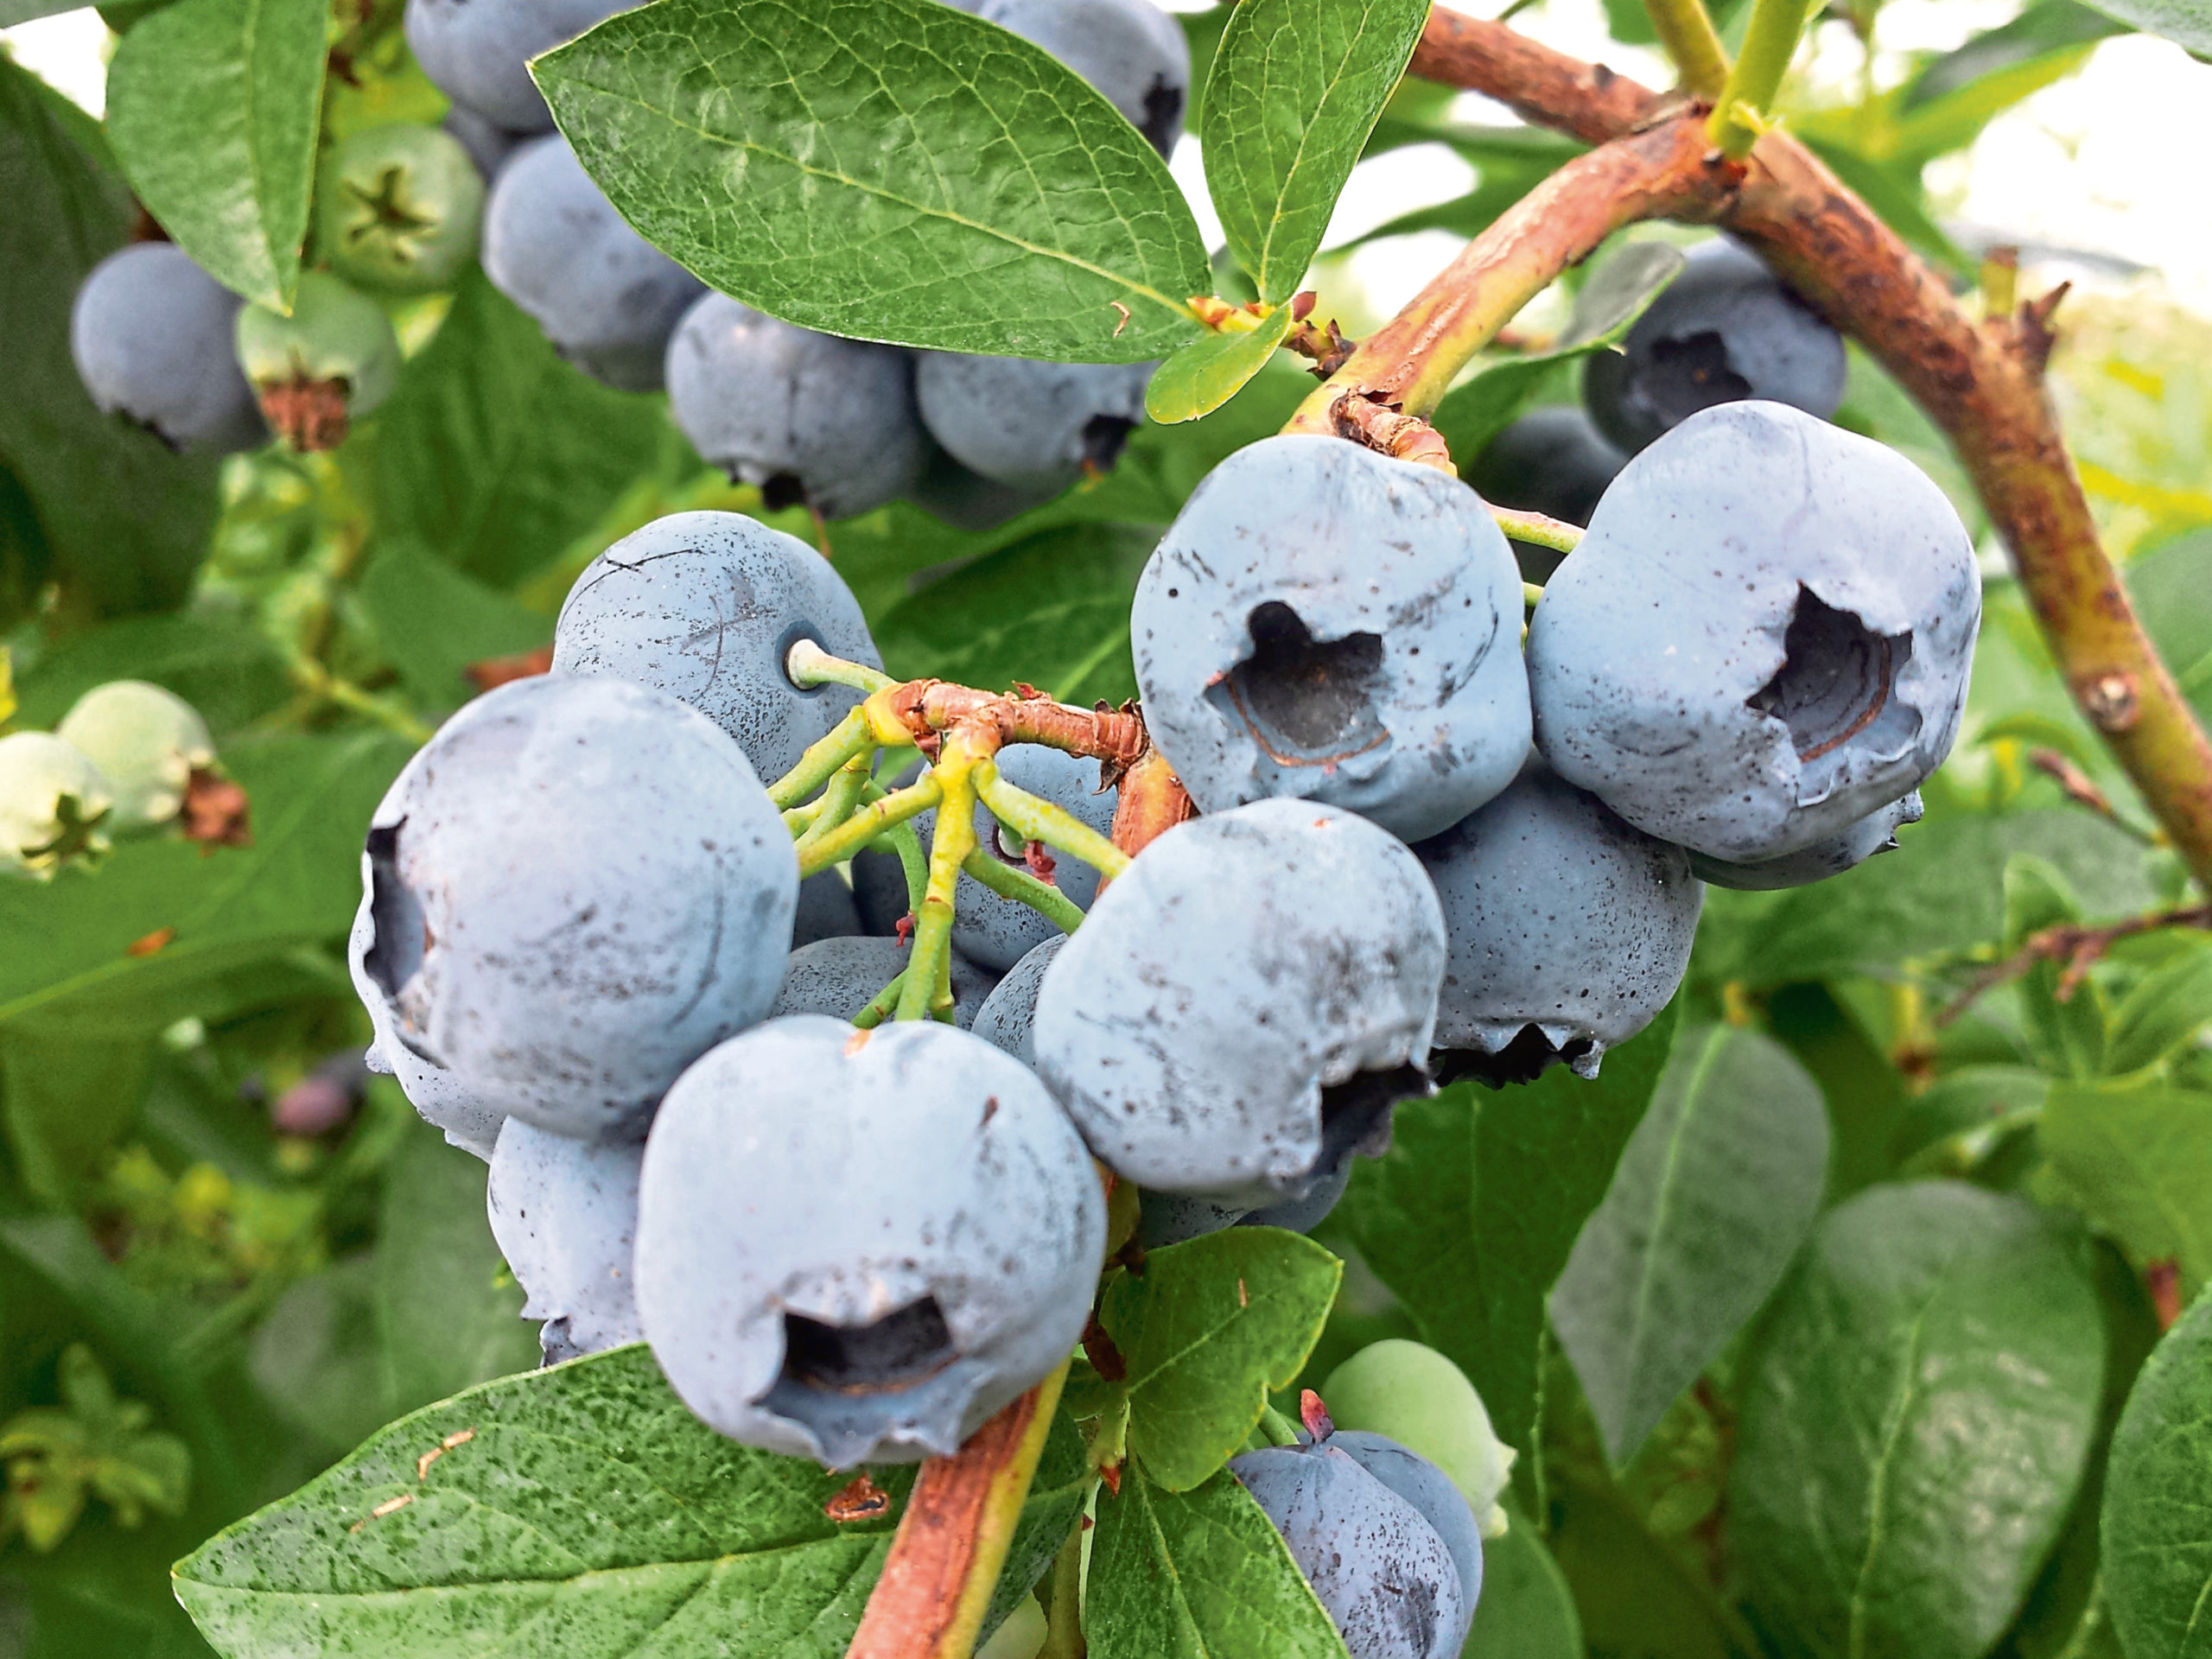 Blueberries are widely grown in Scotland and are more flavoursome than imported berries.